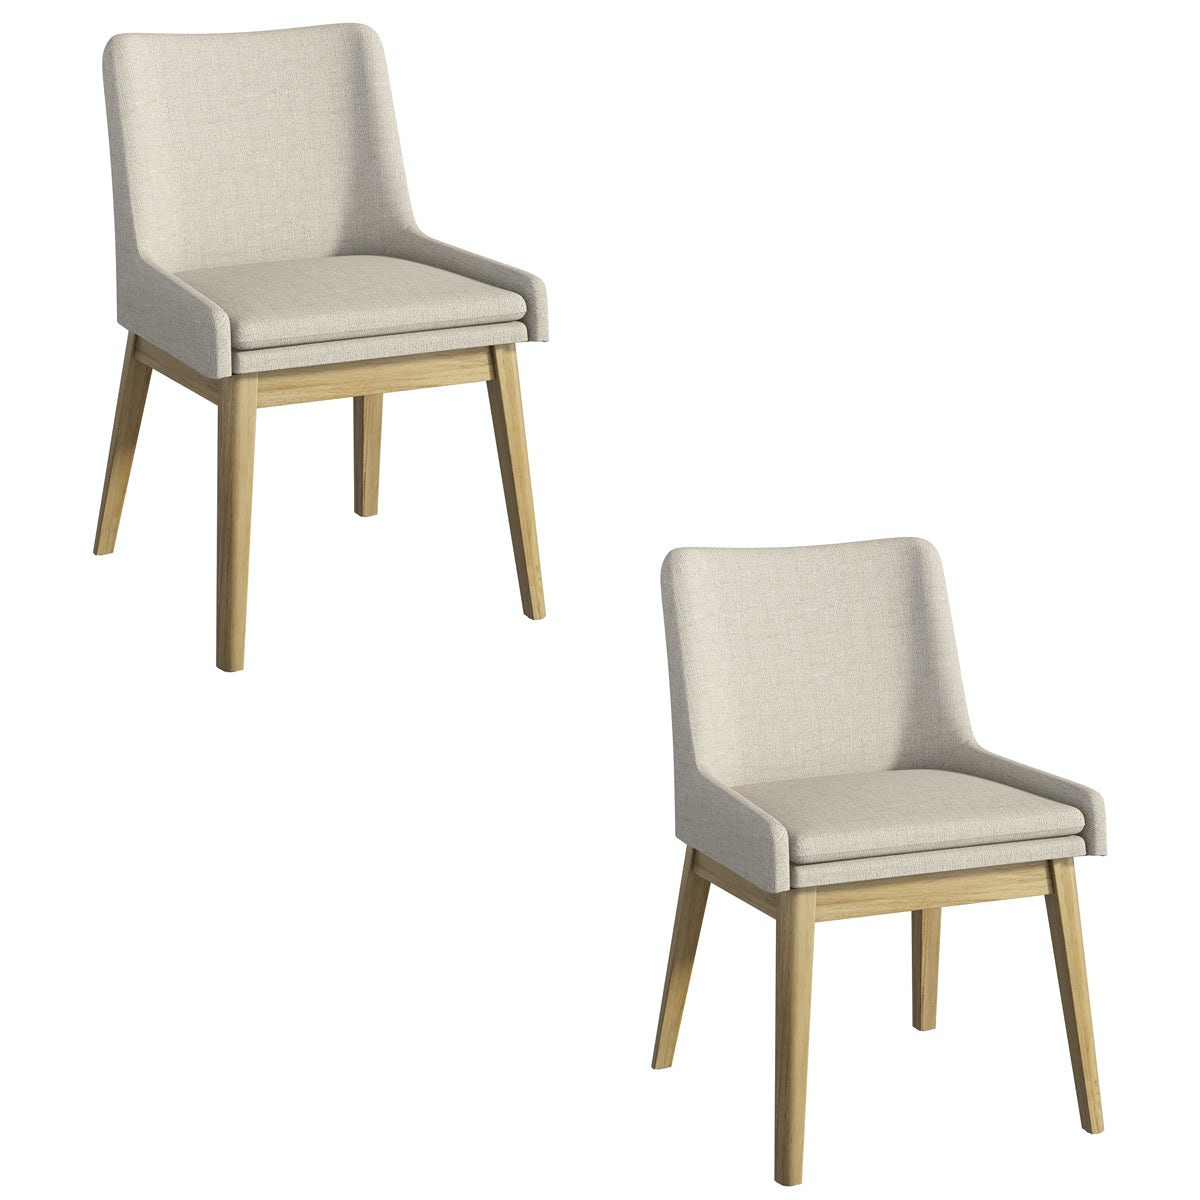 Lincoln oak and beige pair of dining chairs